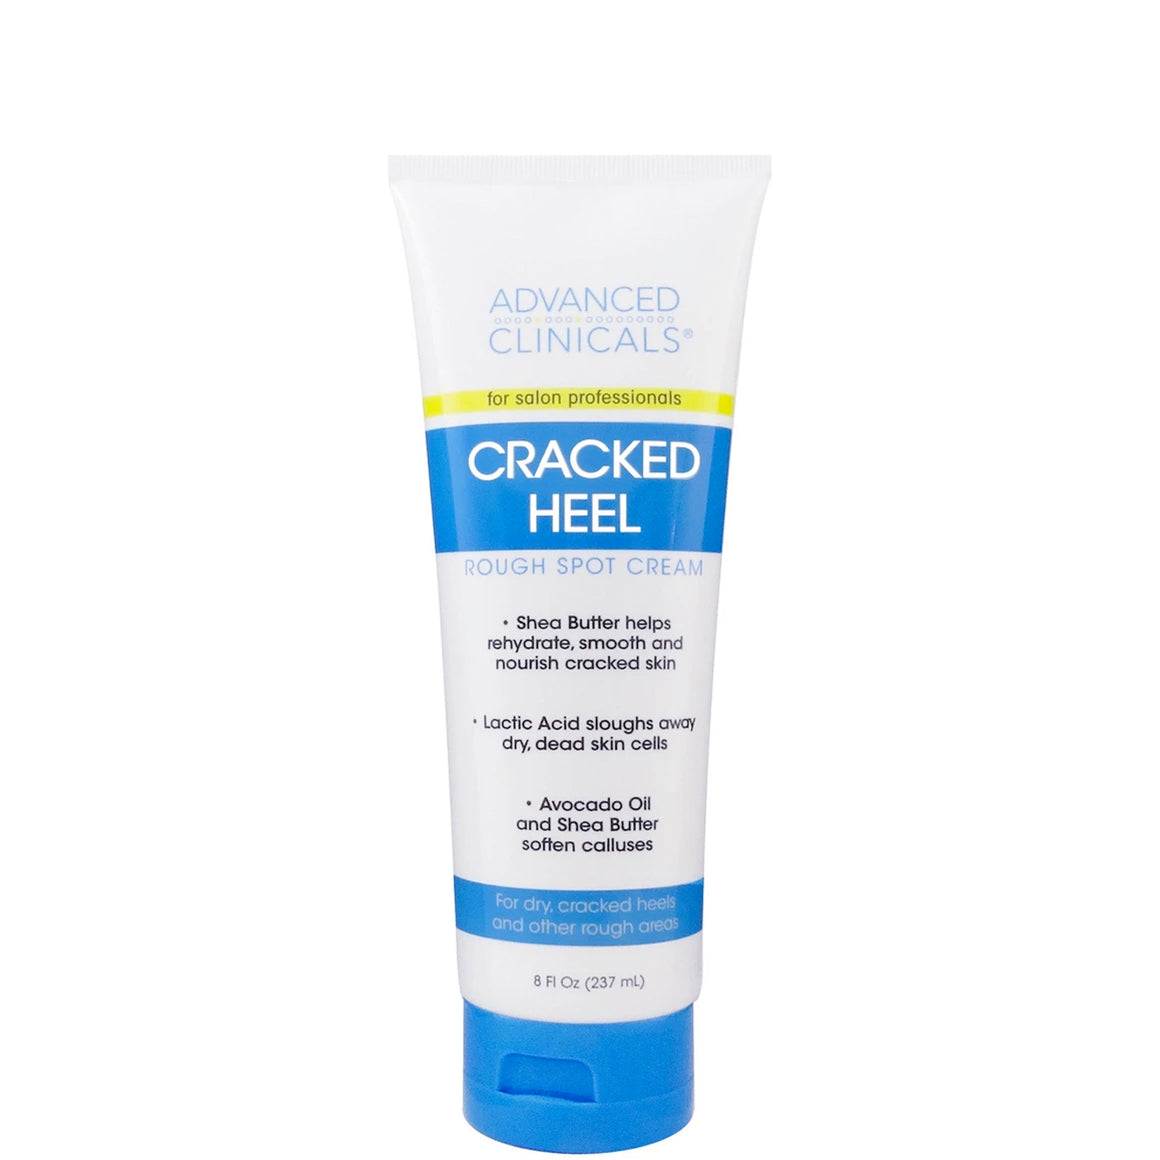 8oz cracked heel, rough spot cream with avocado oil, shea butter and lactic acid